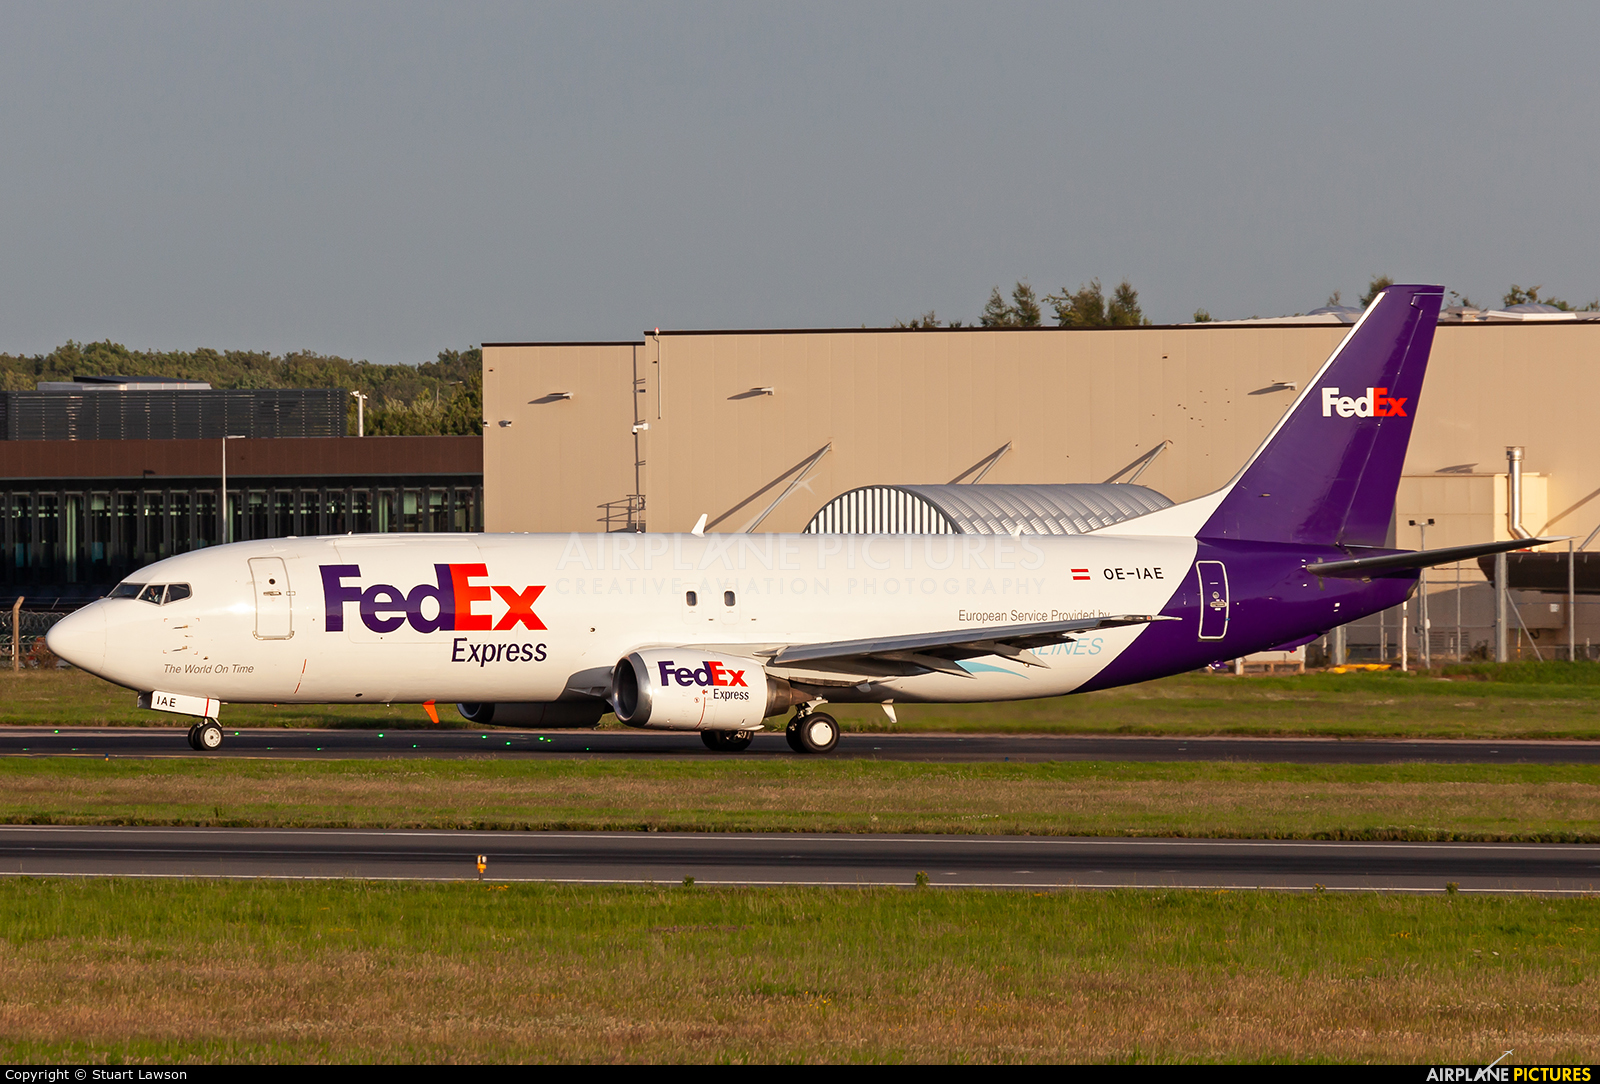 FedEx Federal Express OE-IAE aircraft at East Midlands